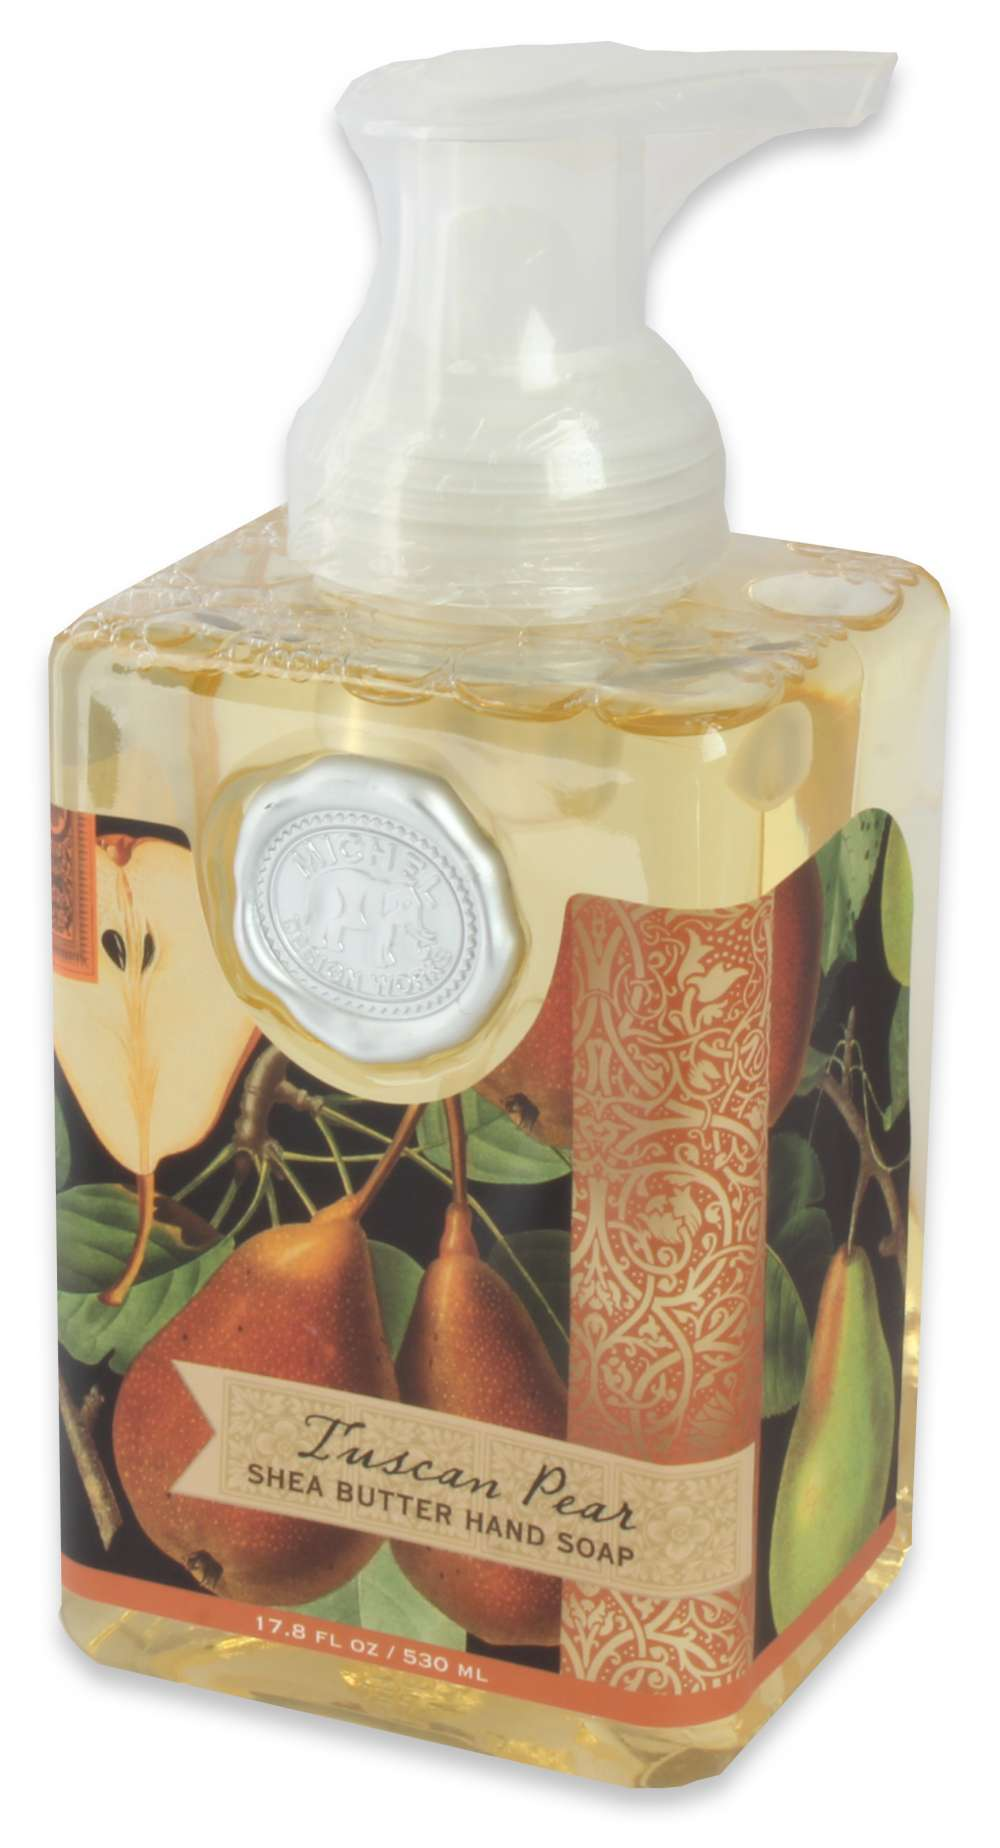 Tuscan Pear Foaming Hand Soap From Posh Soaps